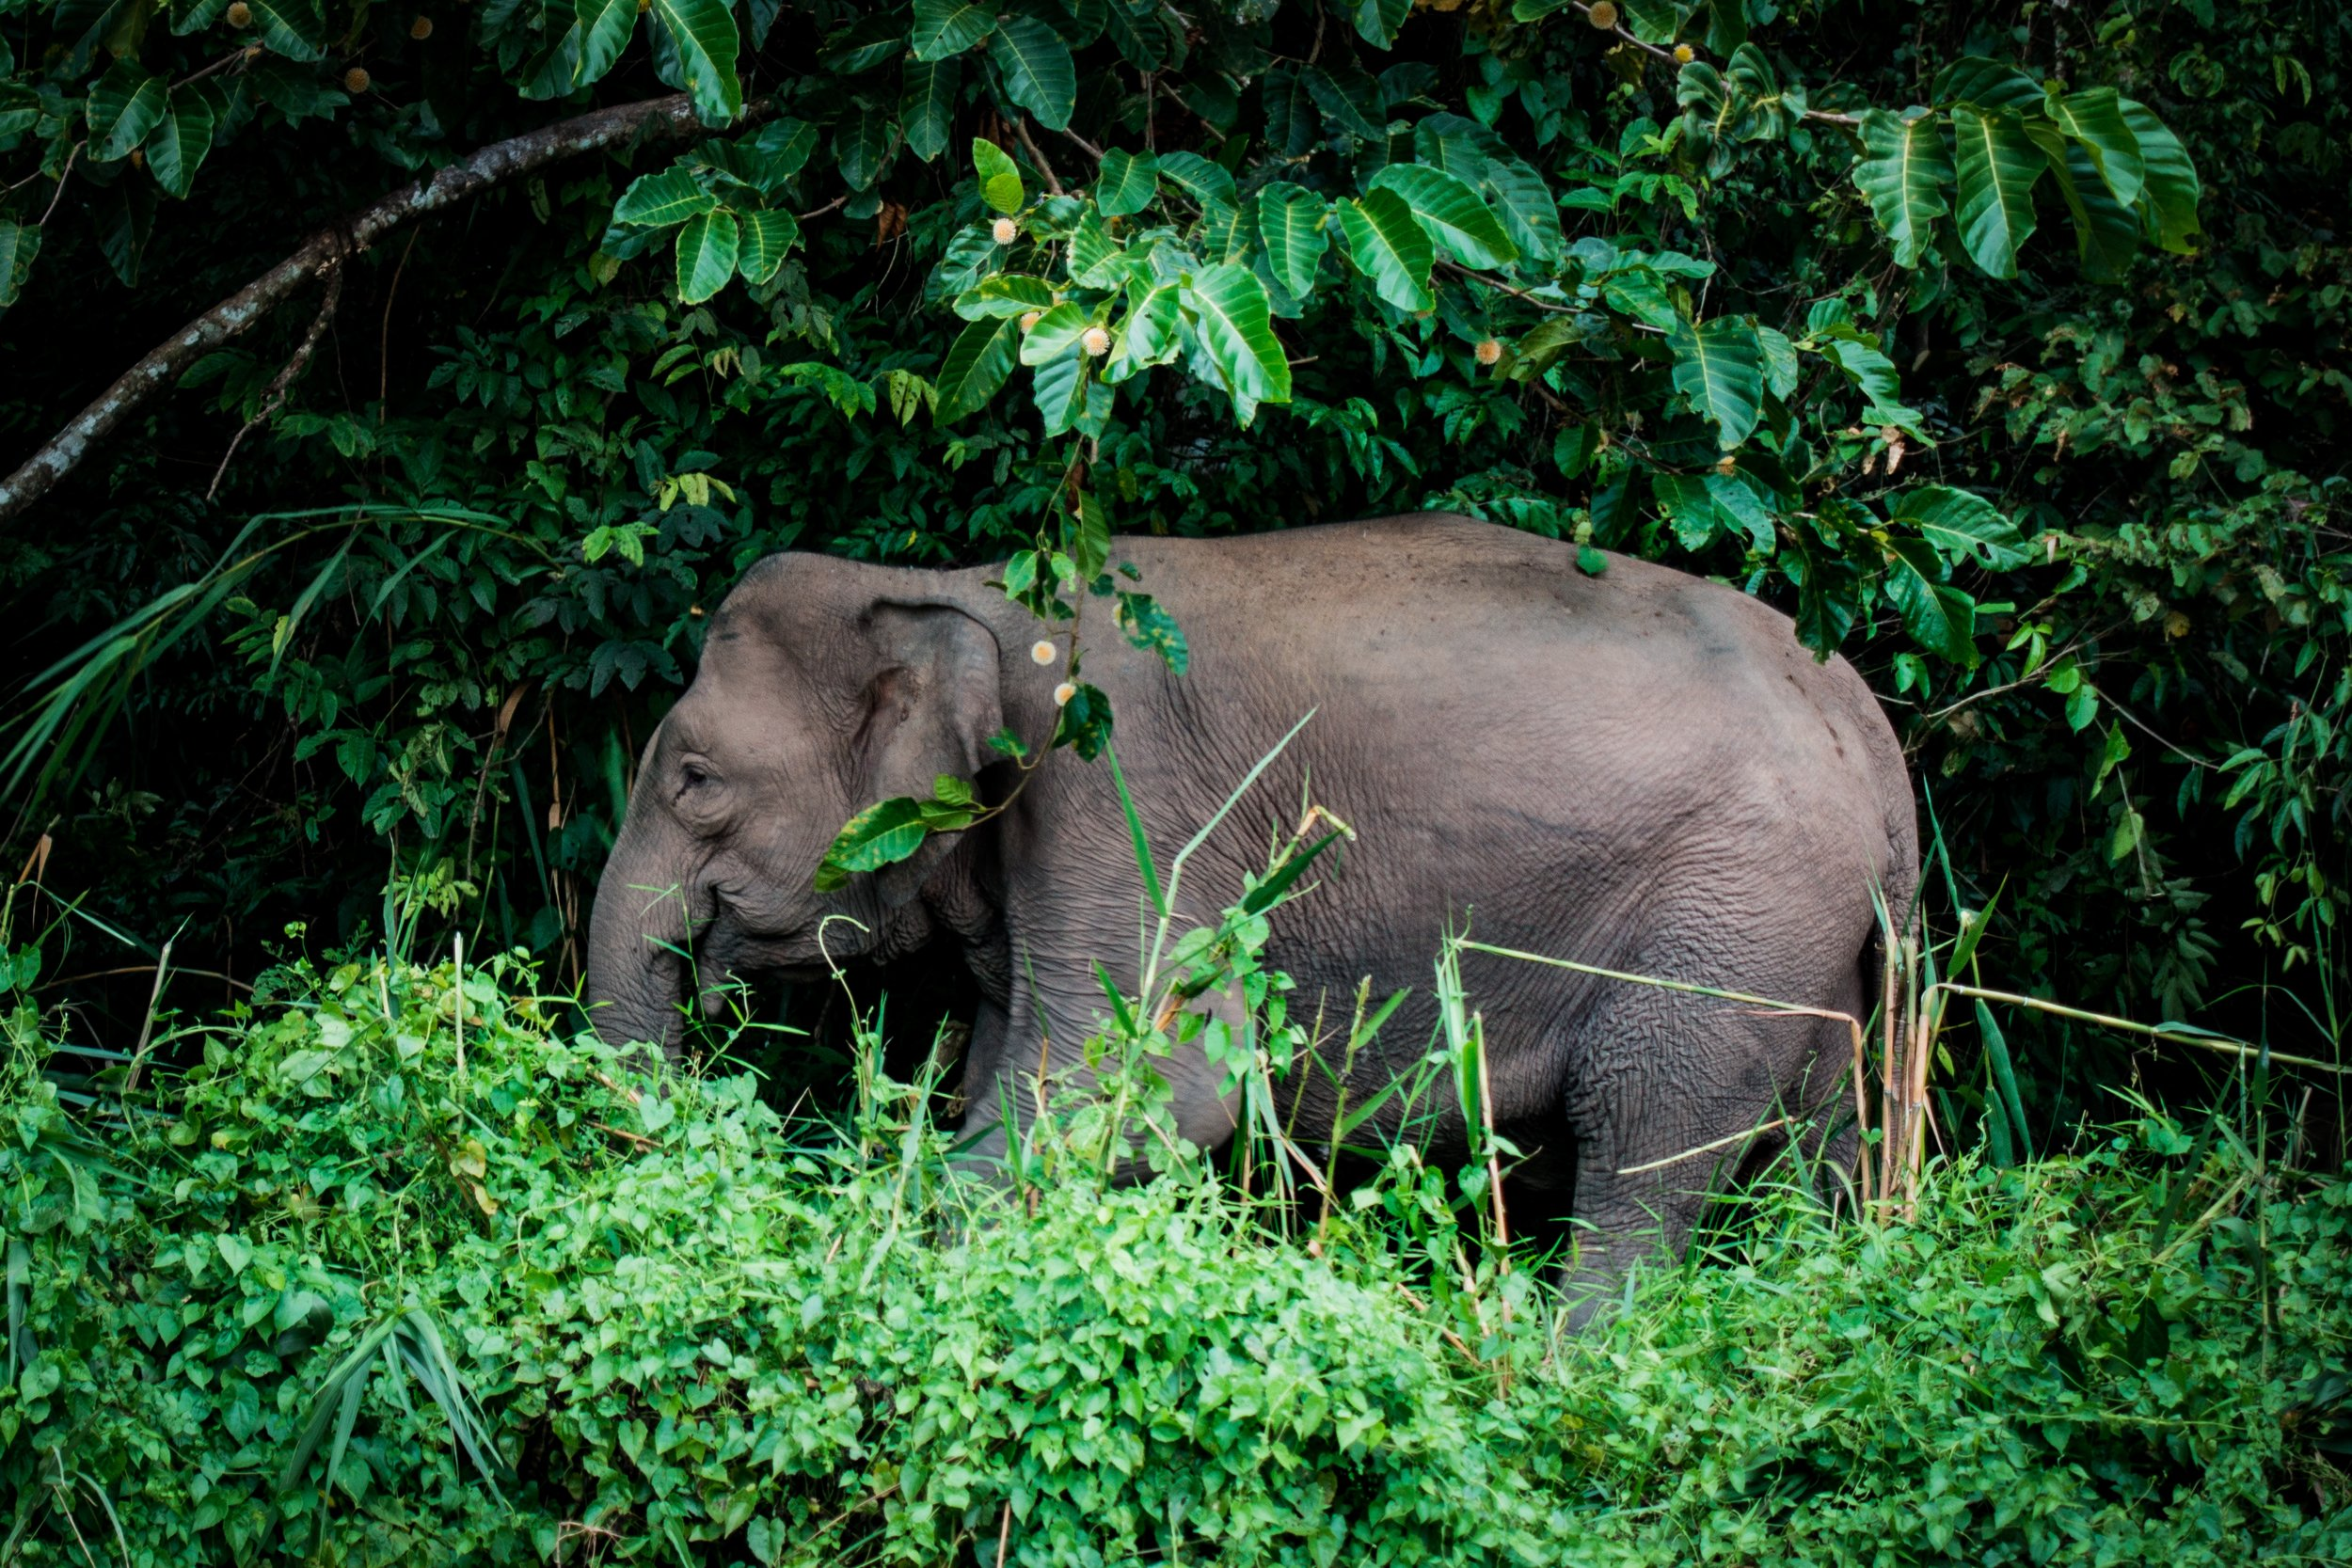 Mondulkiri - Mondulkiri is a region dominated by rolling hills, dense groves and emerald rainforests. It is home to the native Buong people who live peacefully with elephants.